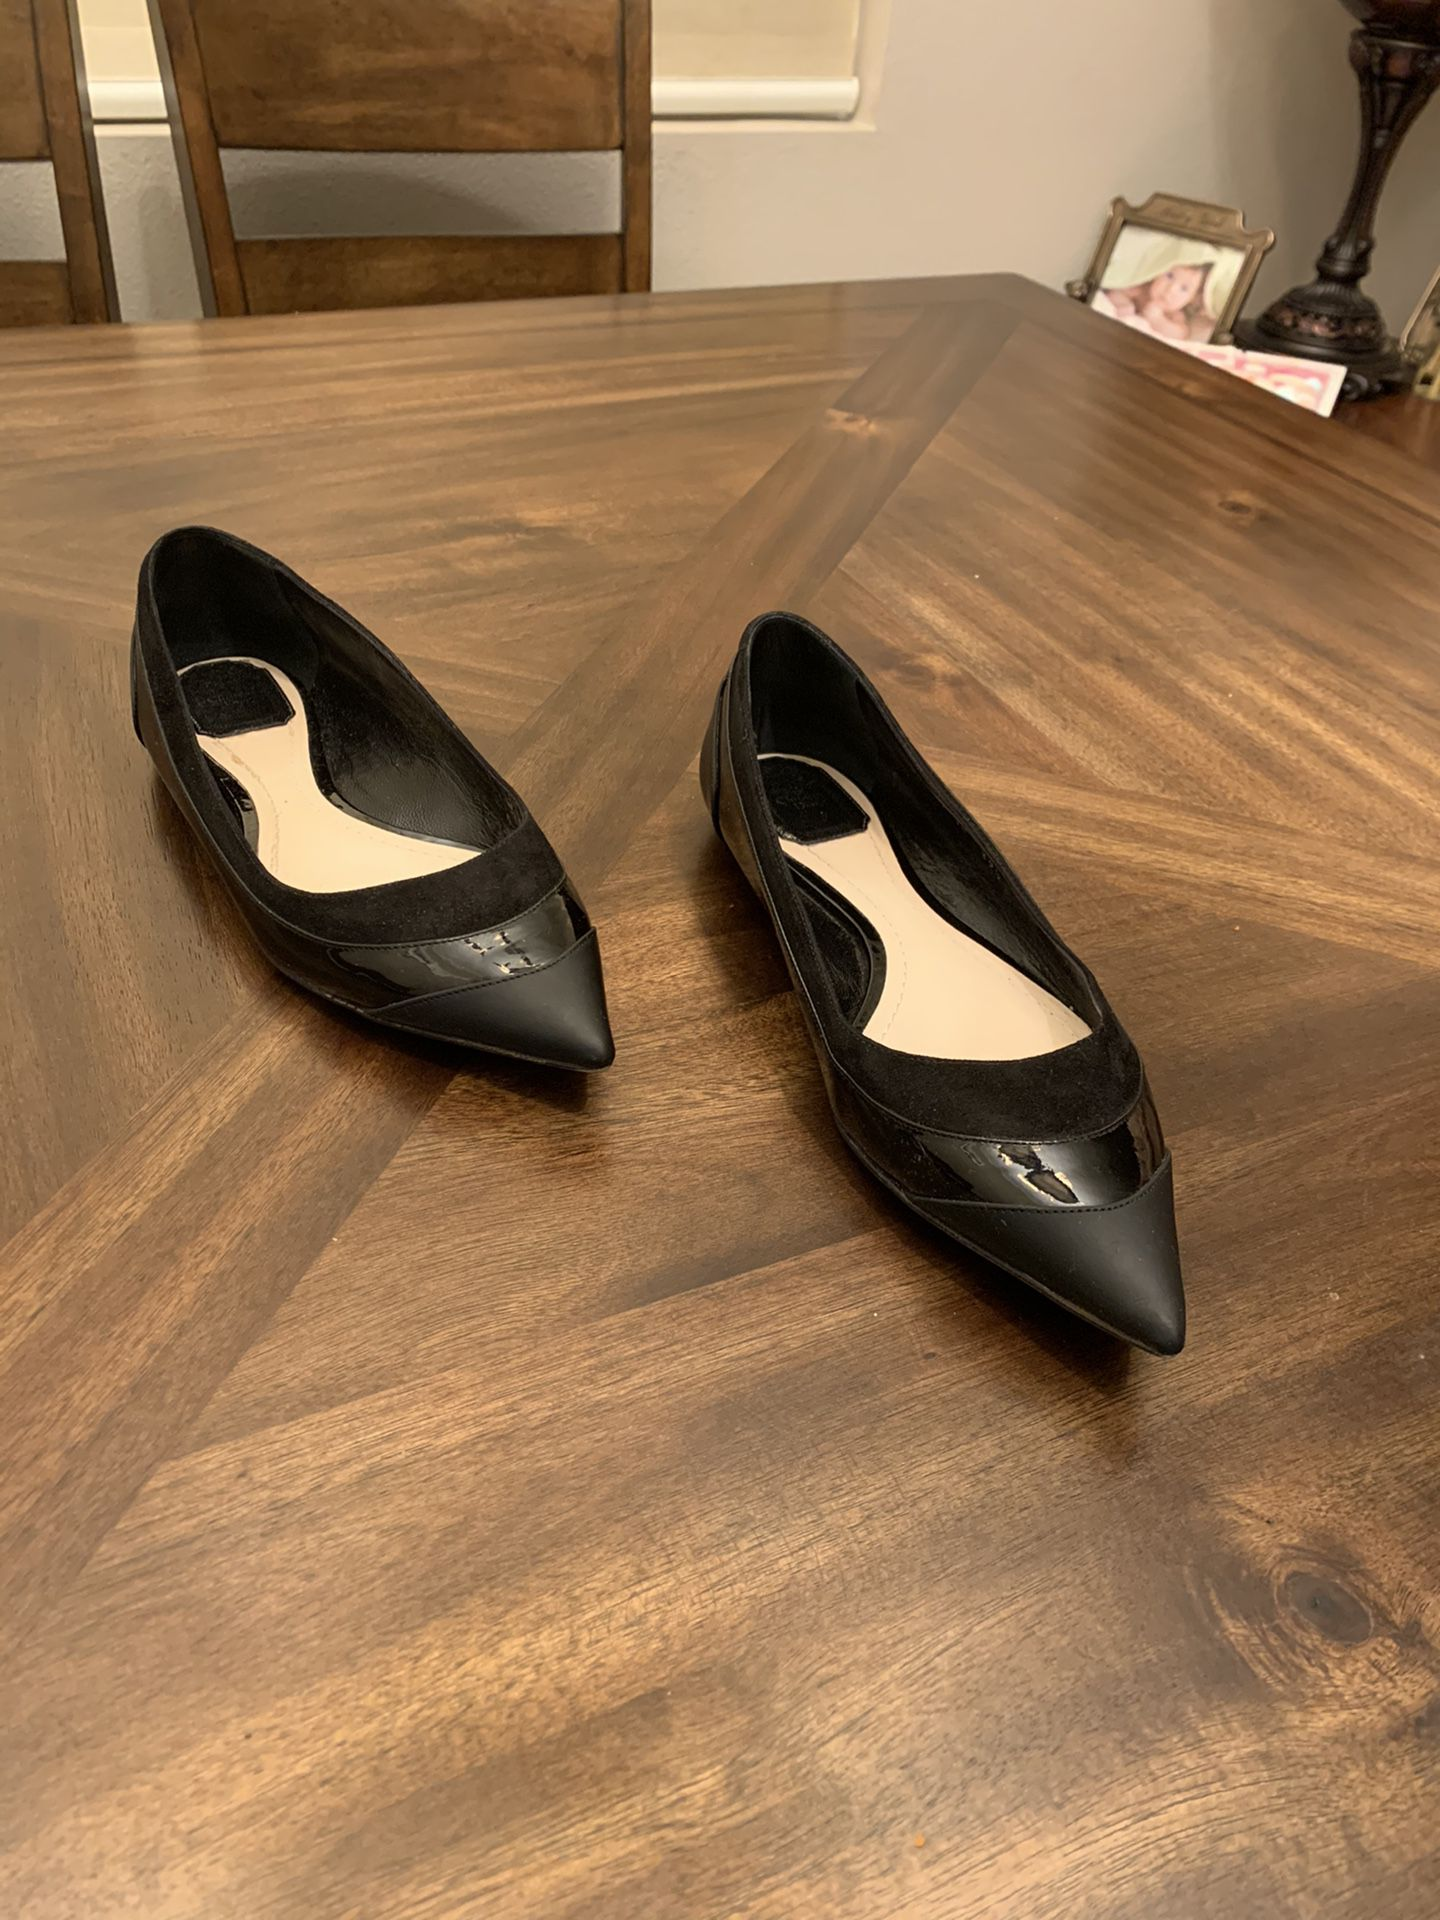 Christian Dior women's flats loafers black leather